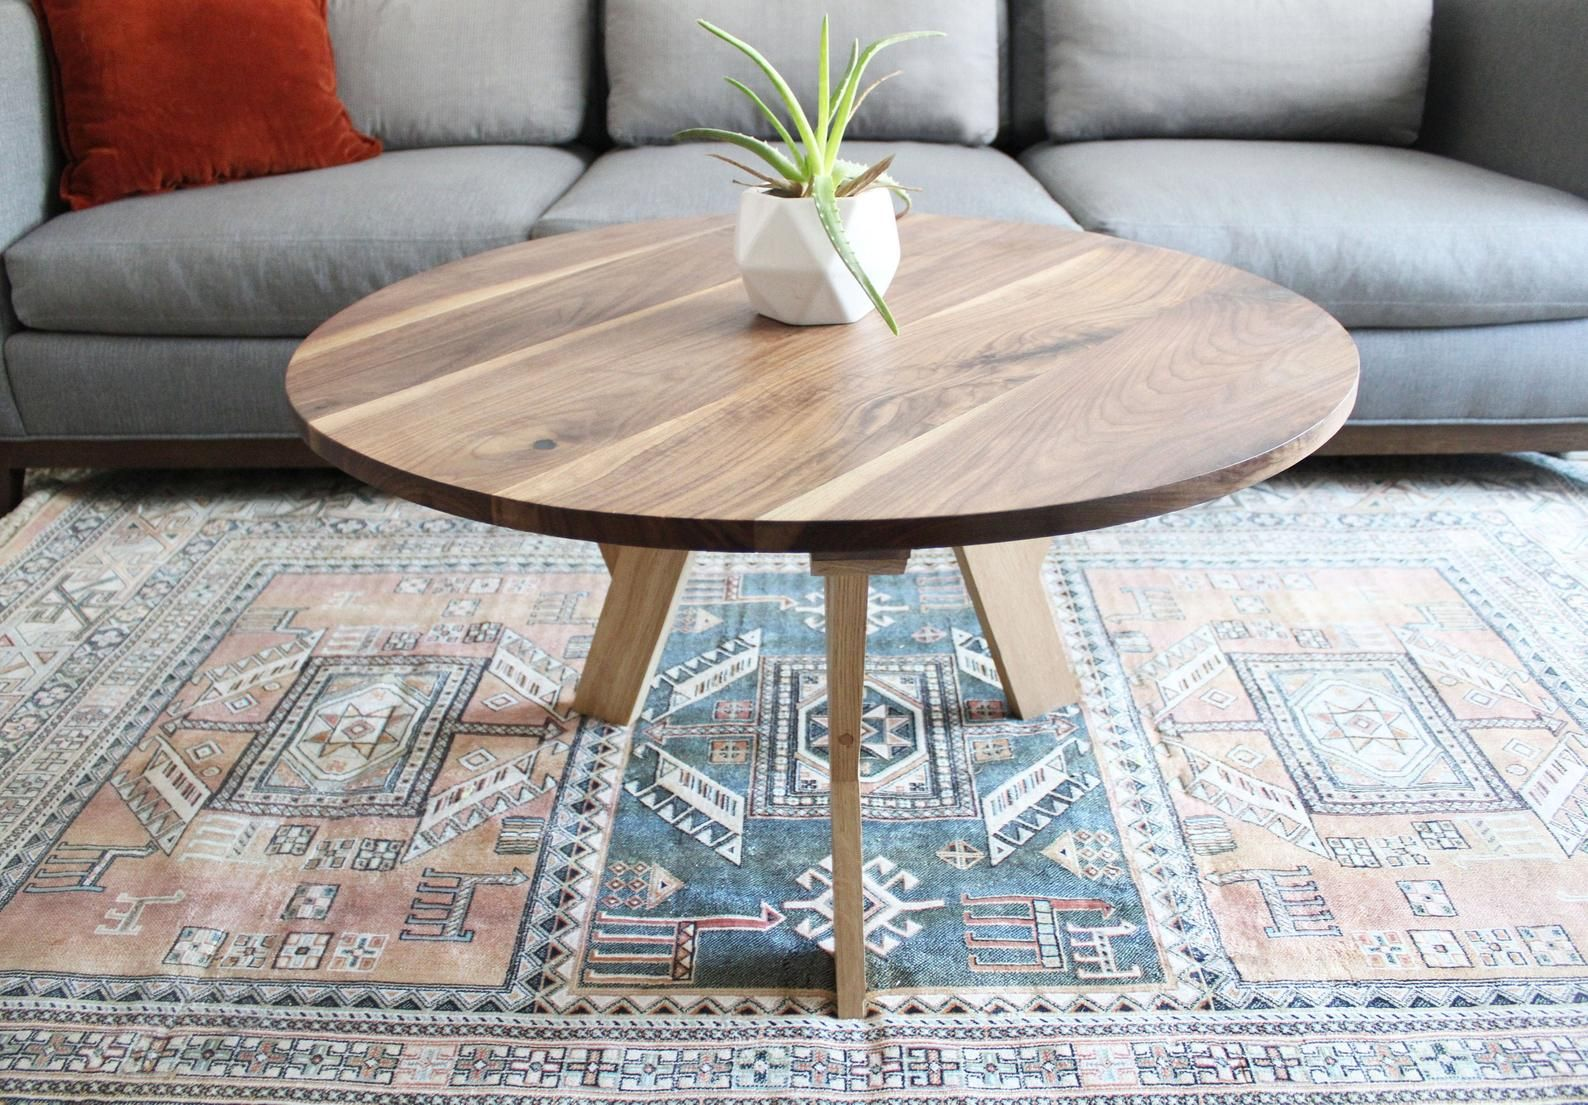 Pin By Ztrask On Xula Apartment Ideas 21 In 2021 Coffee Table Mid Century Modern Coffee Table Round Walnut Coffee Table [ 1105 x 1588 Pixel ]